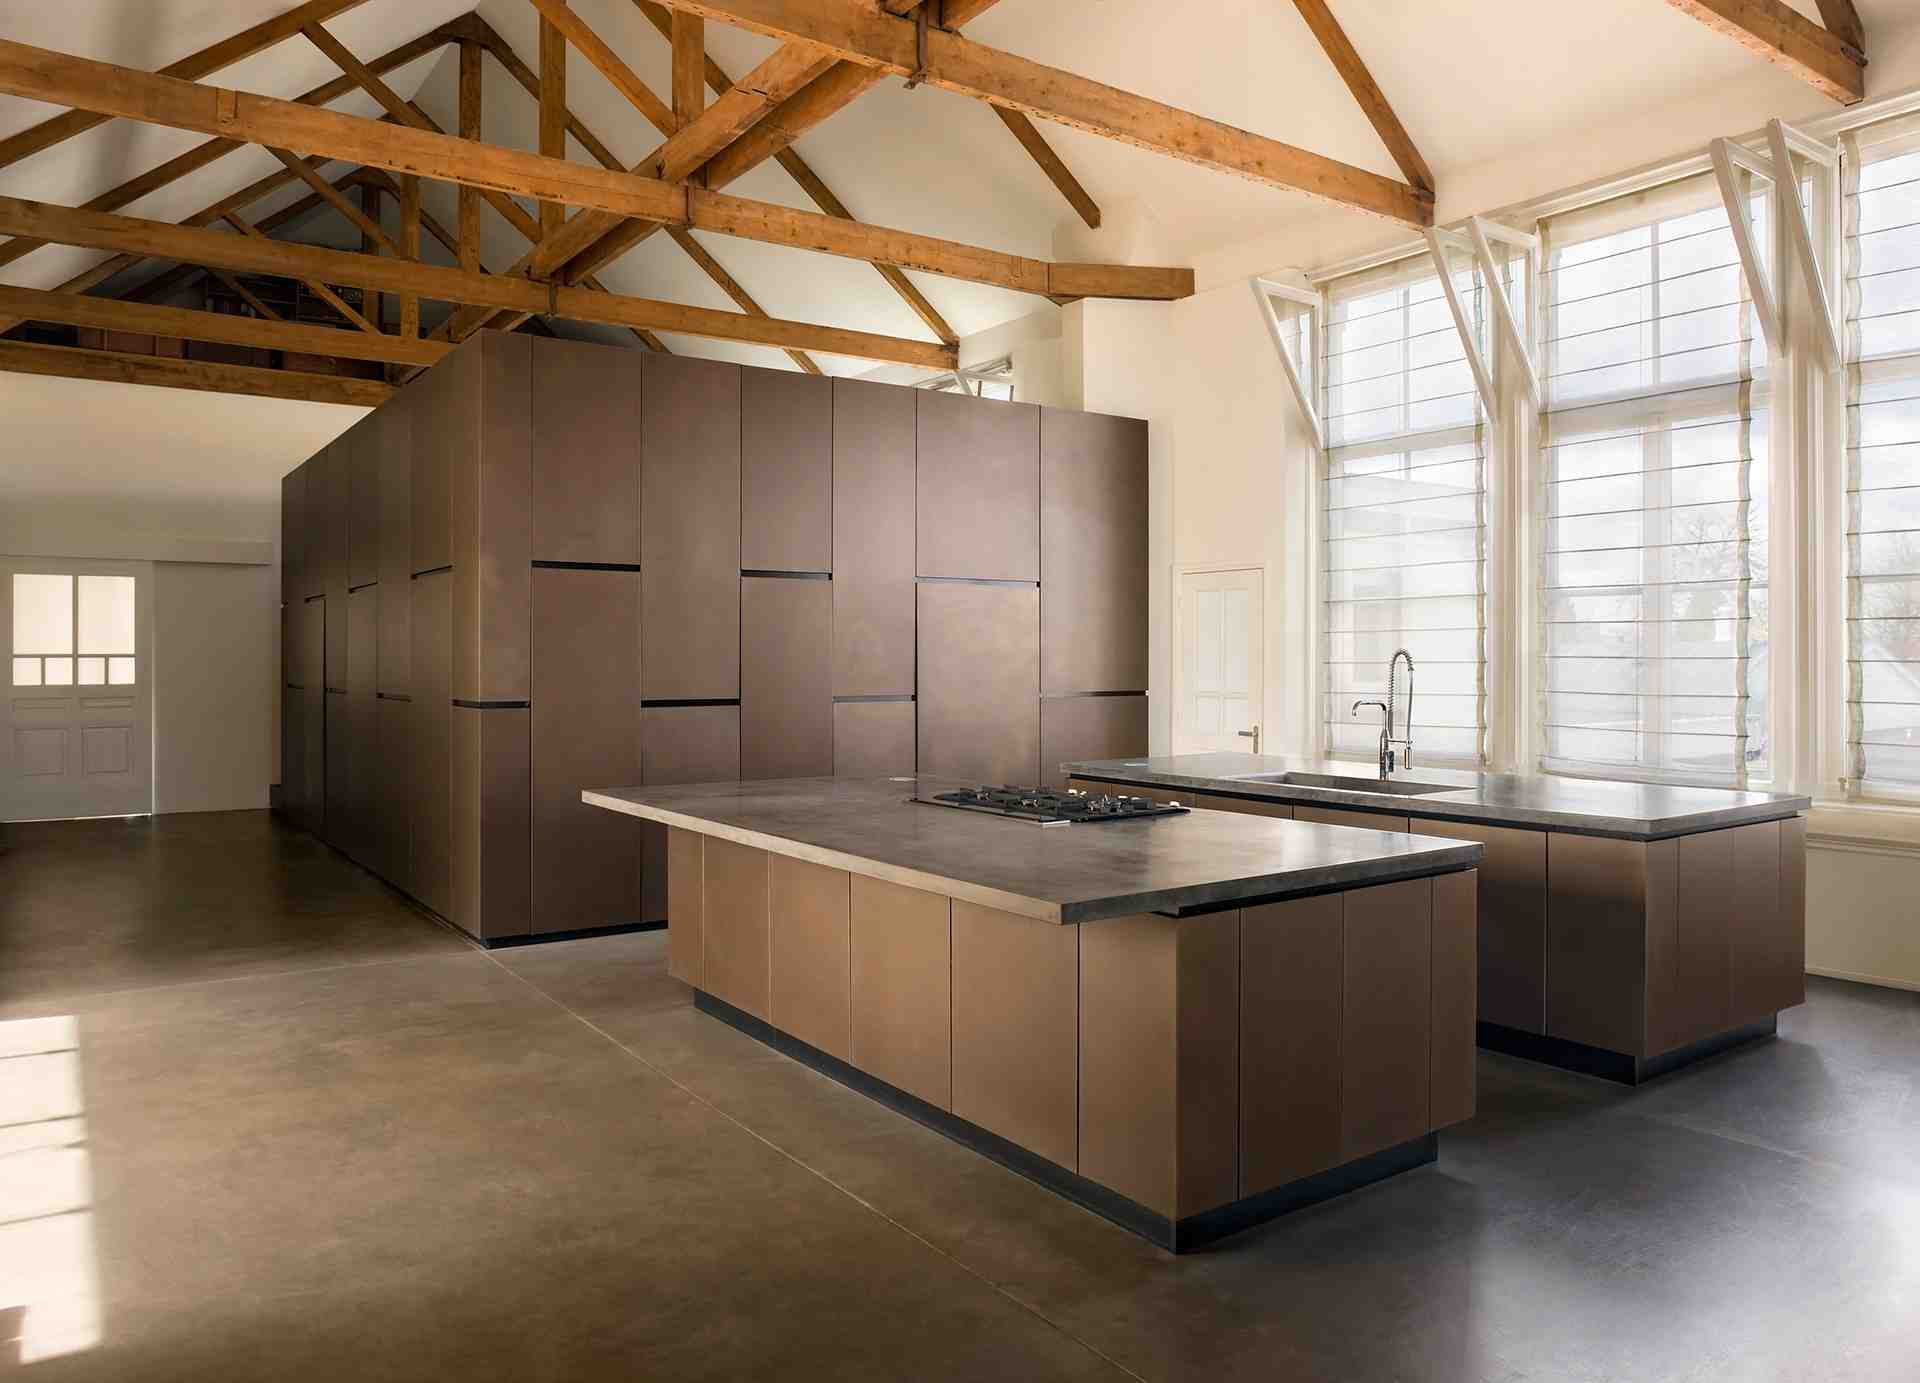 workshop of wonders interieur architect rb 02